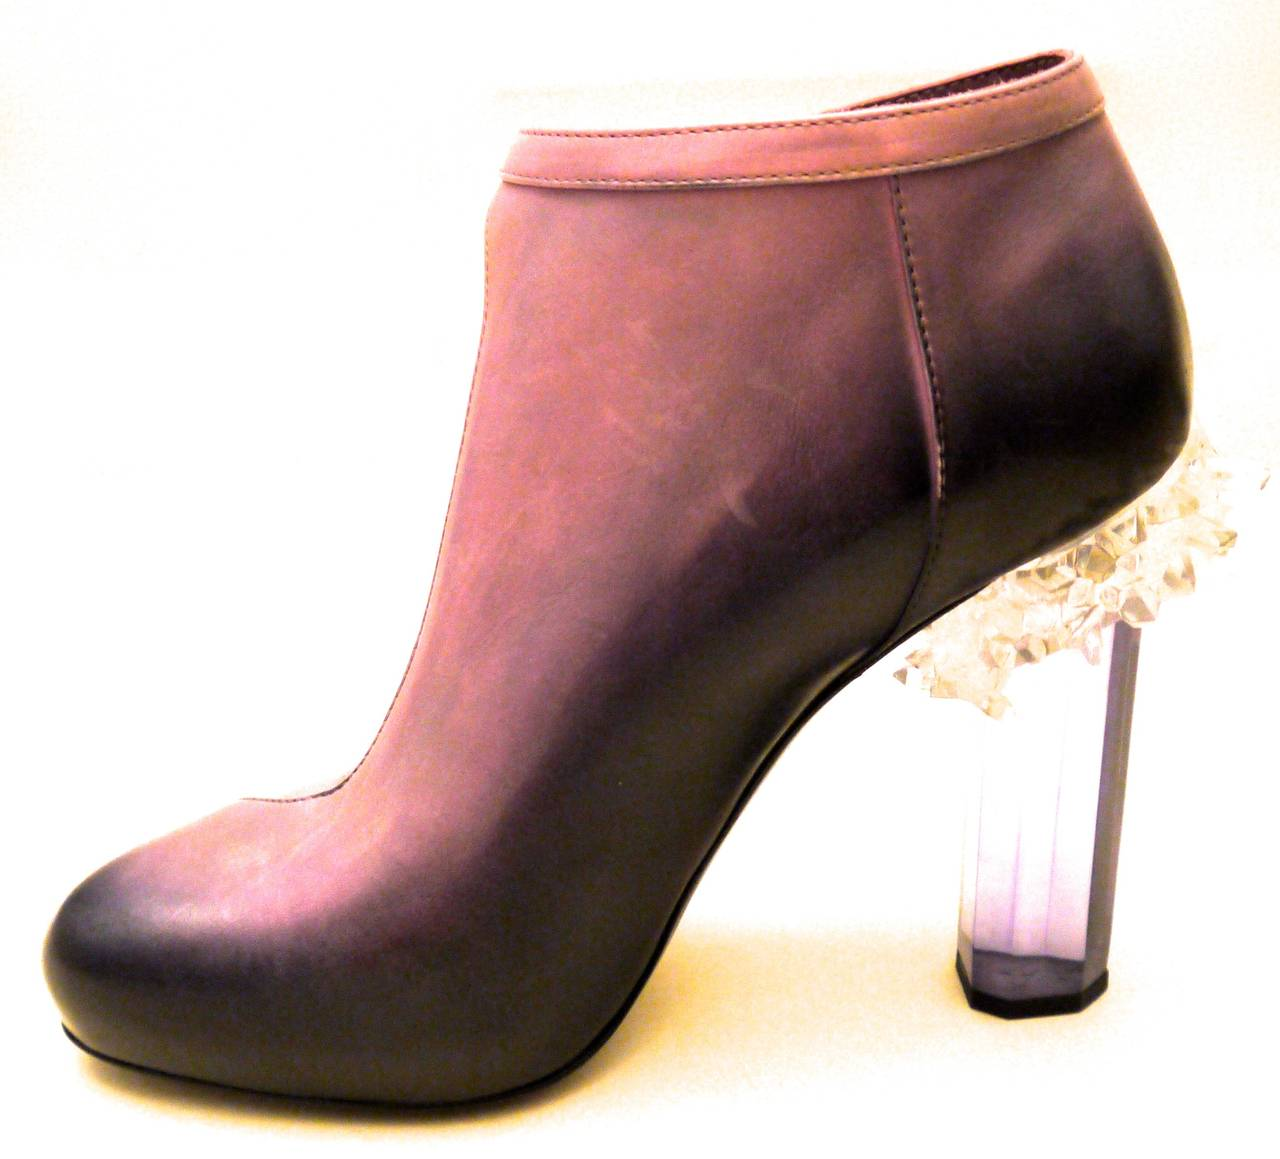 Women's Rare Chanel Runway Boots - Purple and Black - Lucite Heels - Size 37.5 For Sale